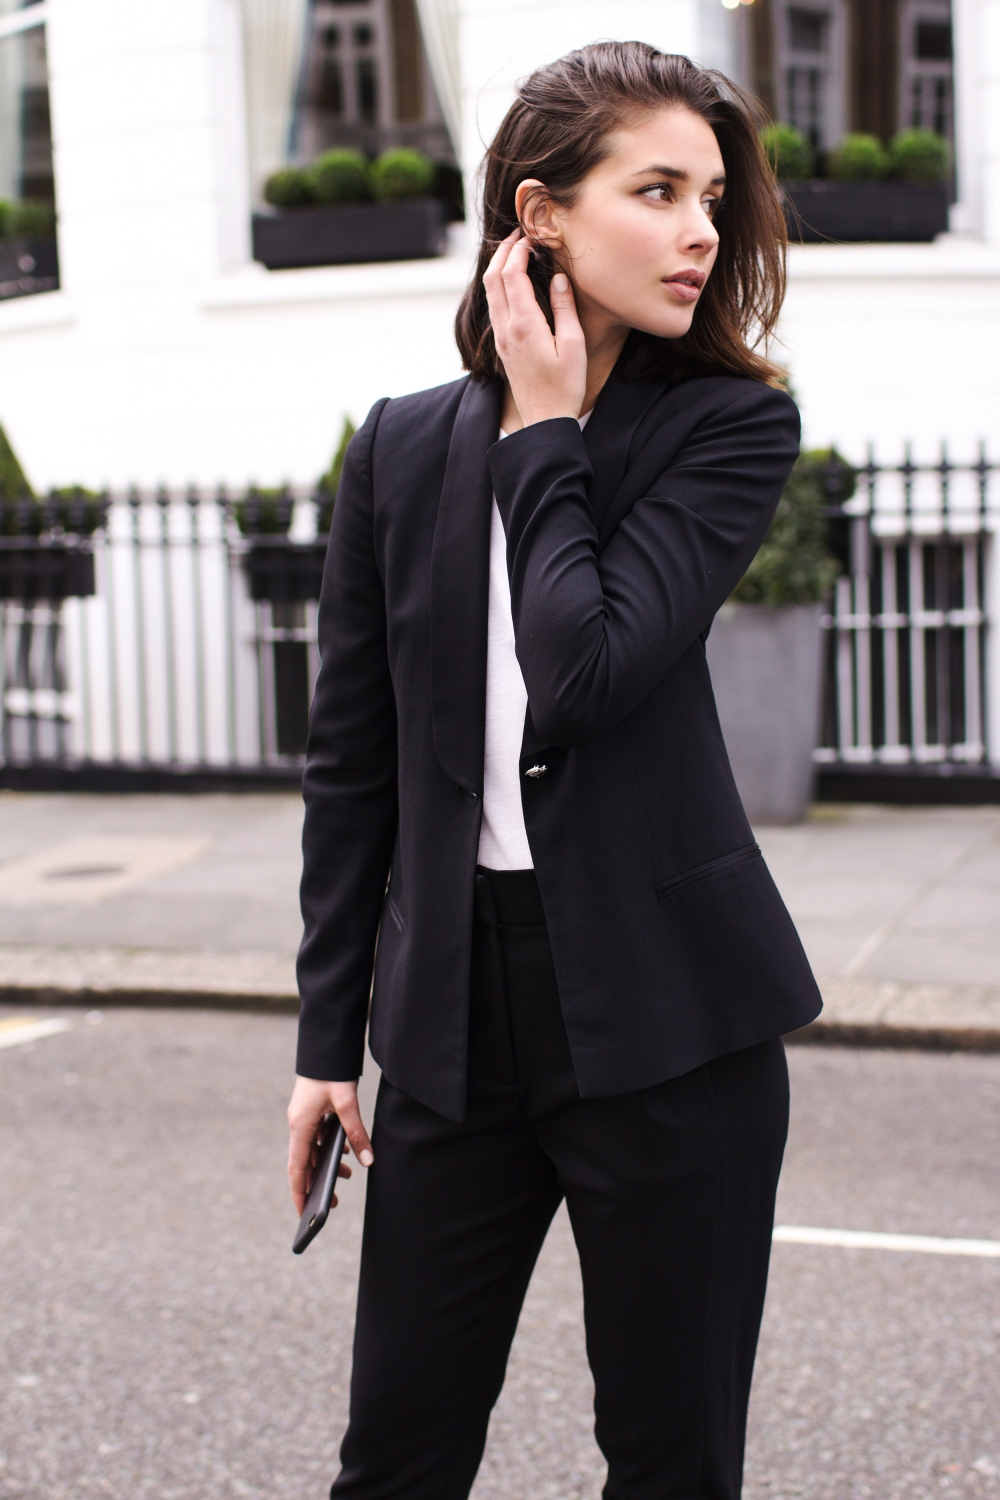 how to wear a suit for women, street style, outfit